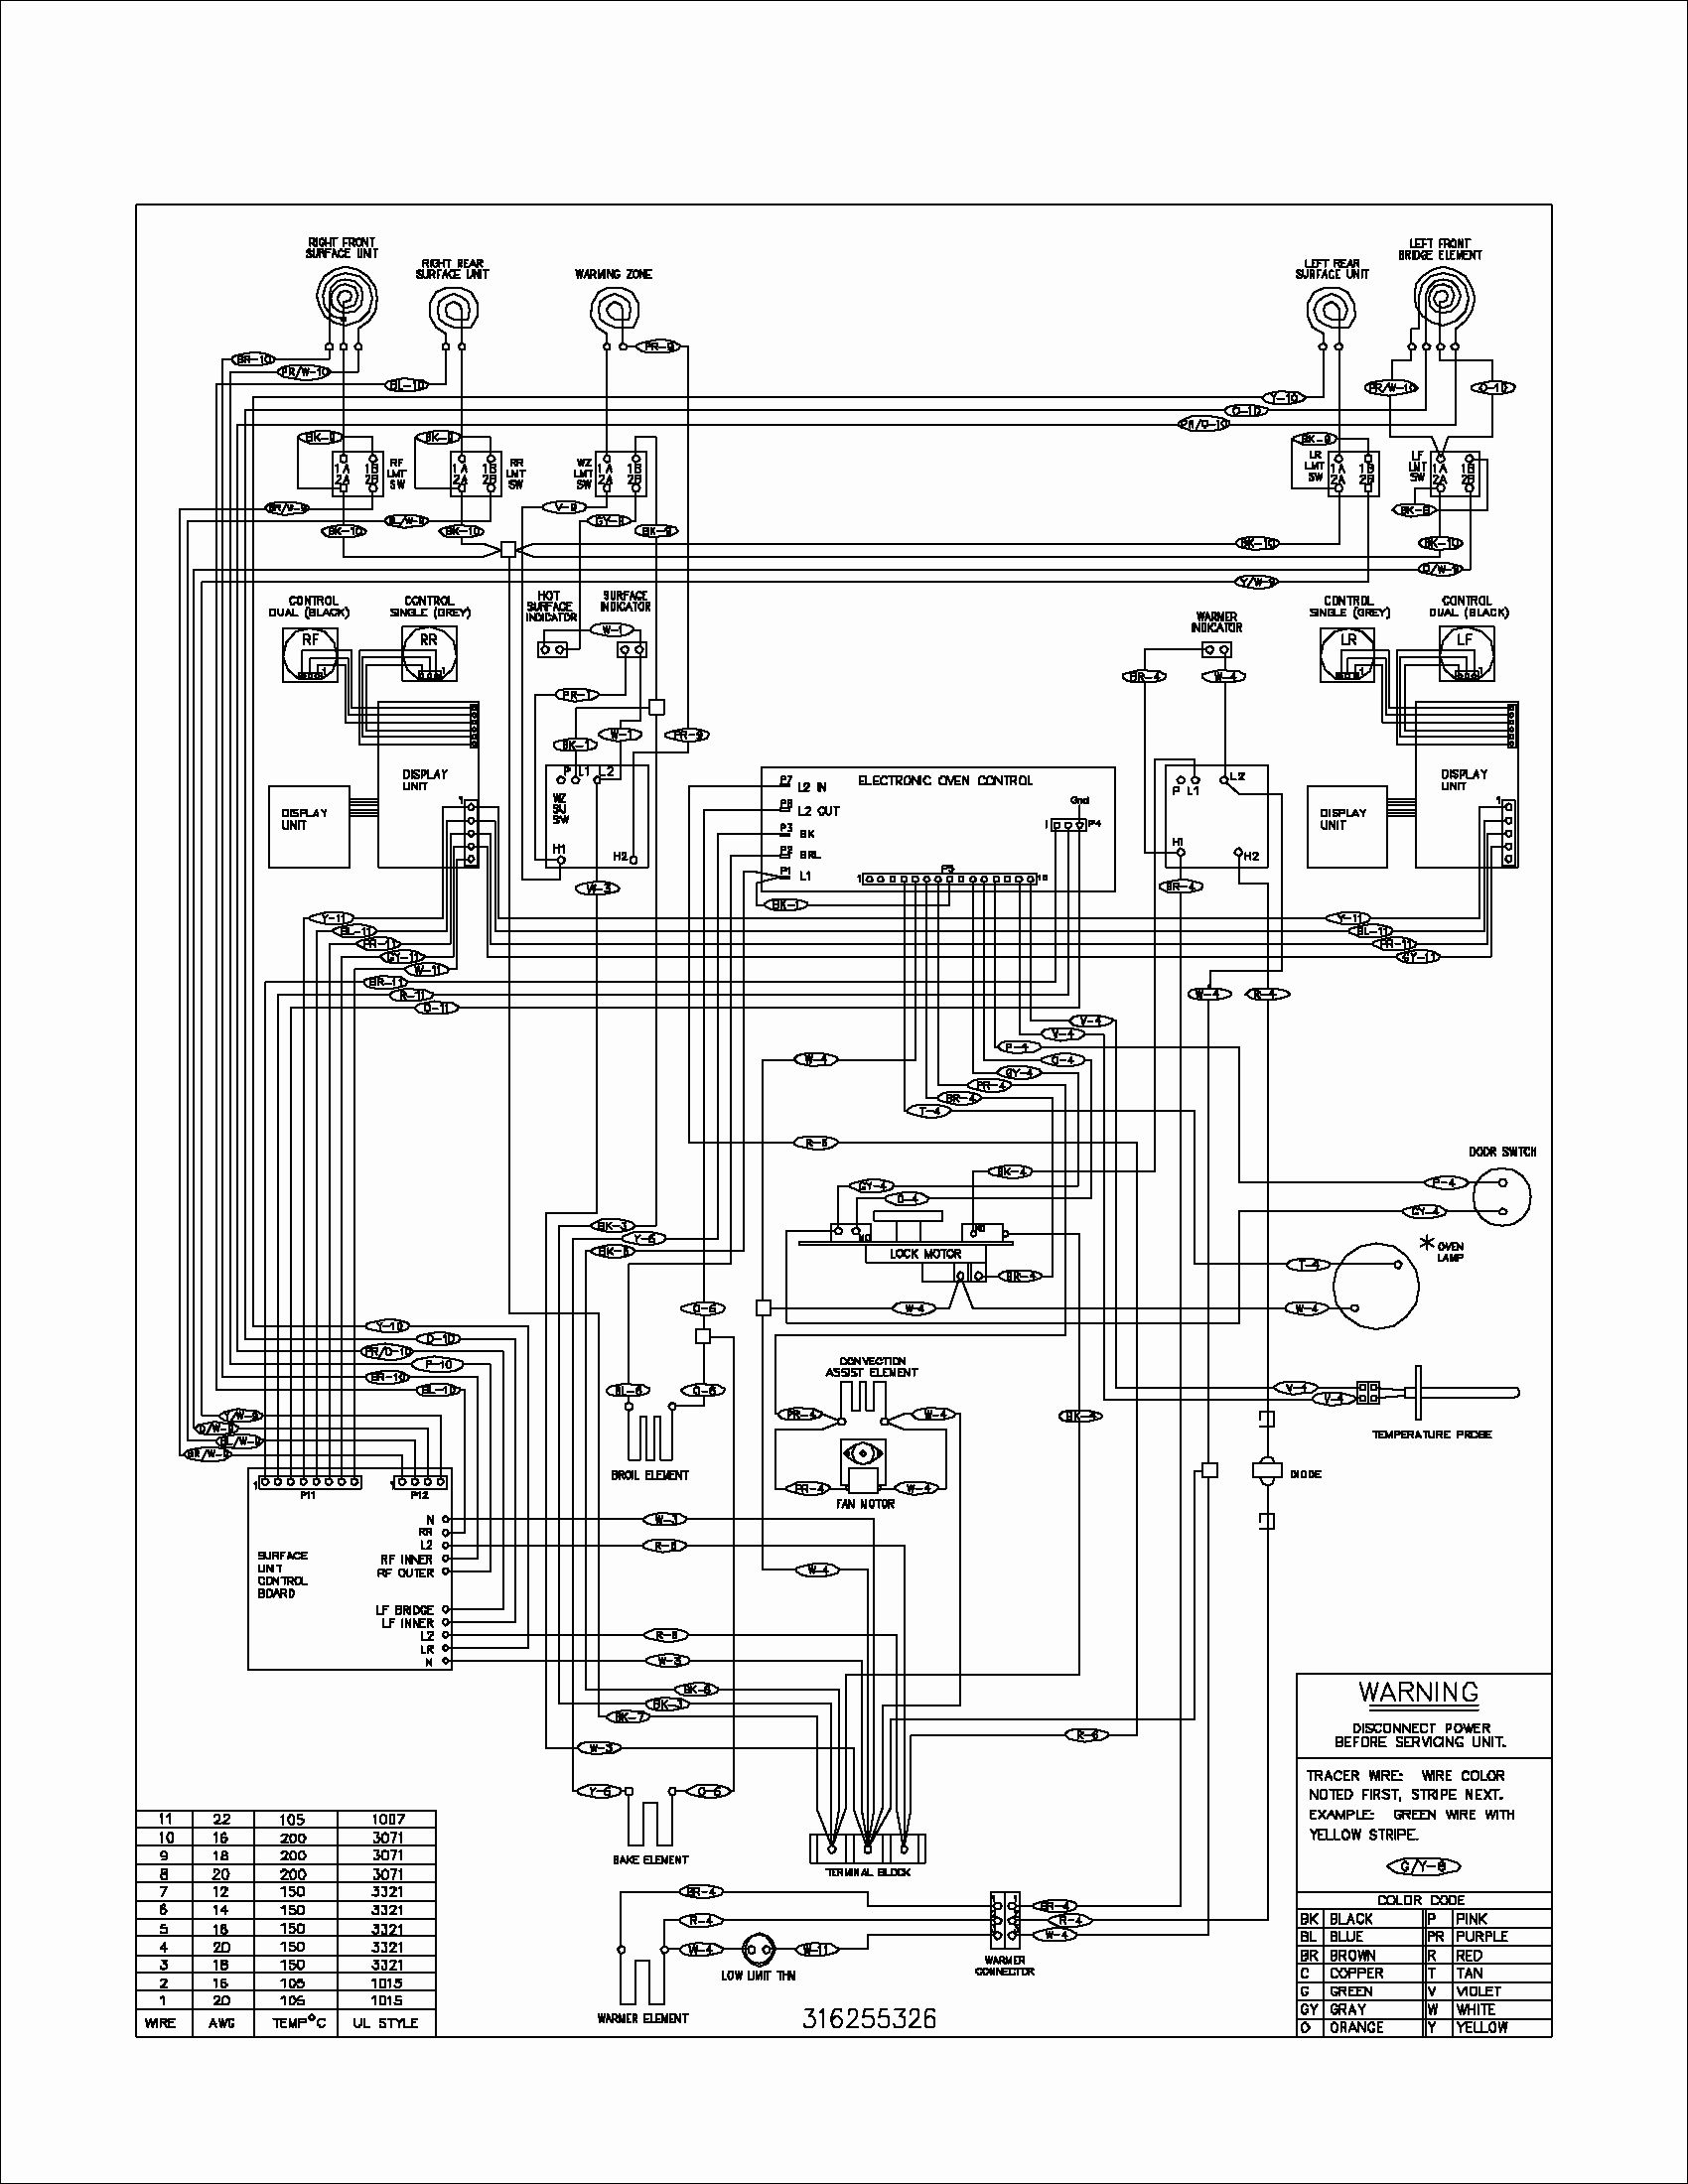 nordyne e2eb 015ha wiring diagram nordyne electric furnace wiring diagram intertherm e2eb 015ha wiring diagram | free wiring diagram #11